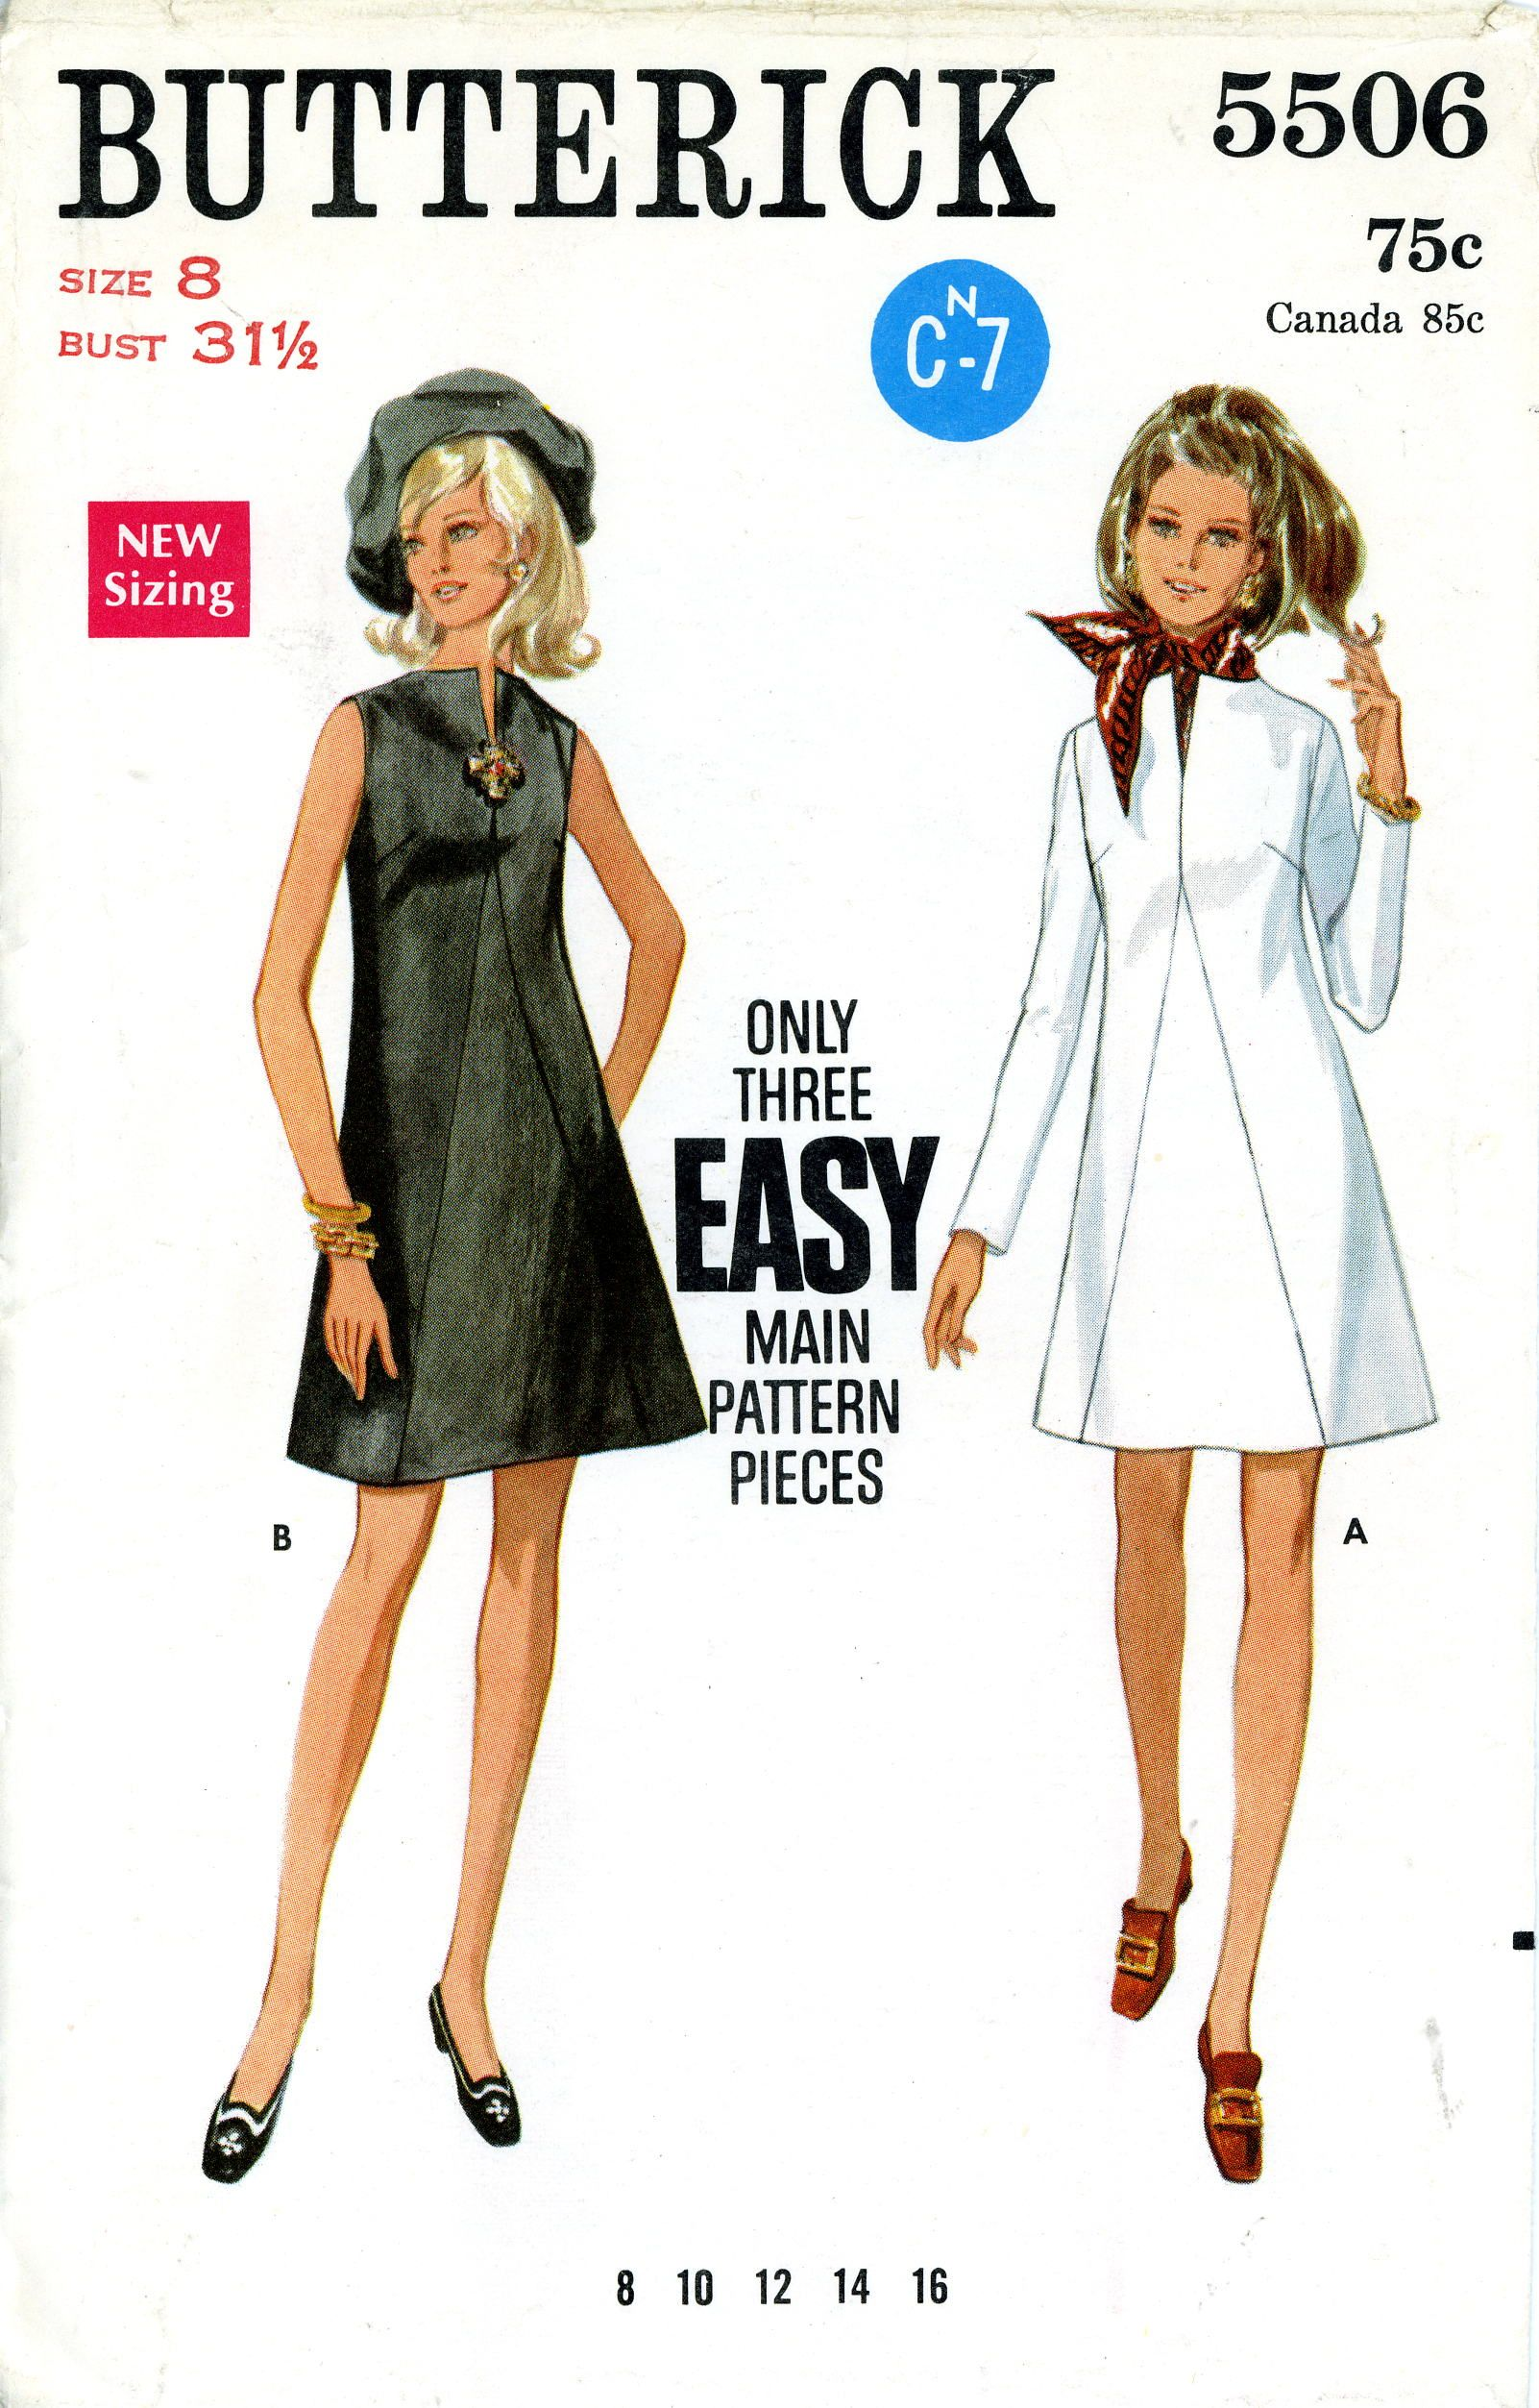 Dating butterick sewing patterns